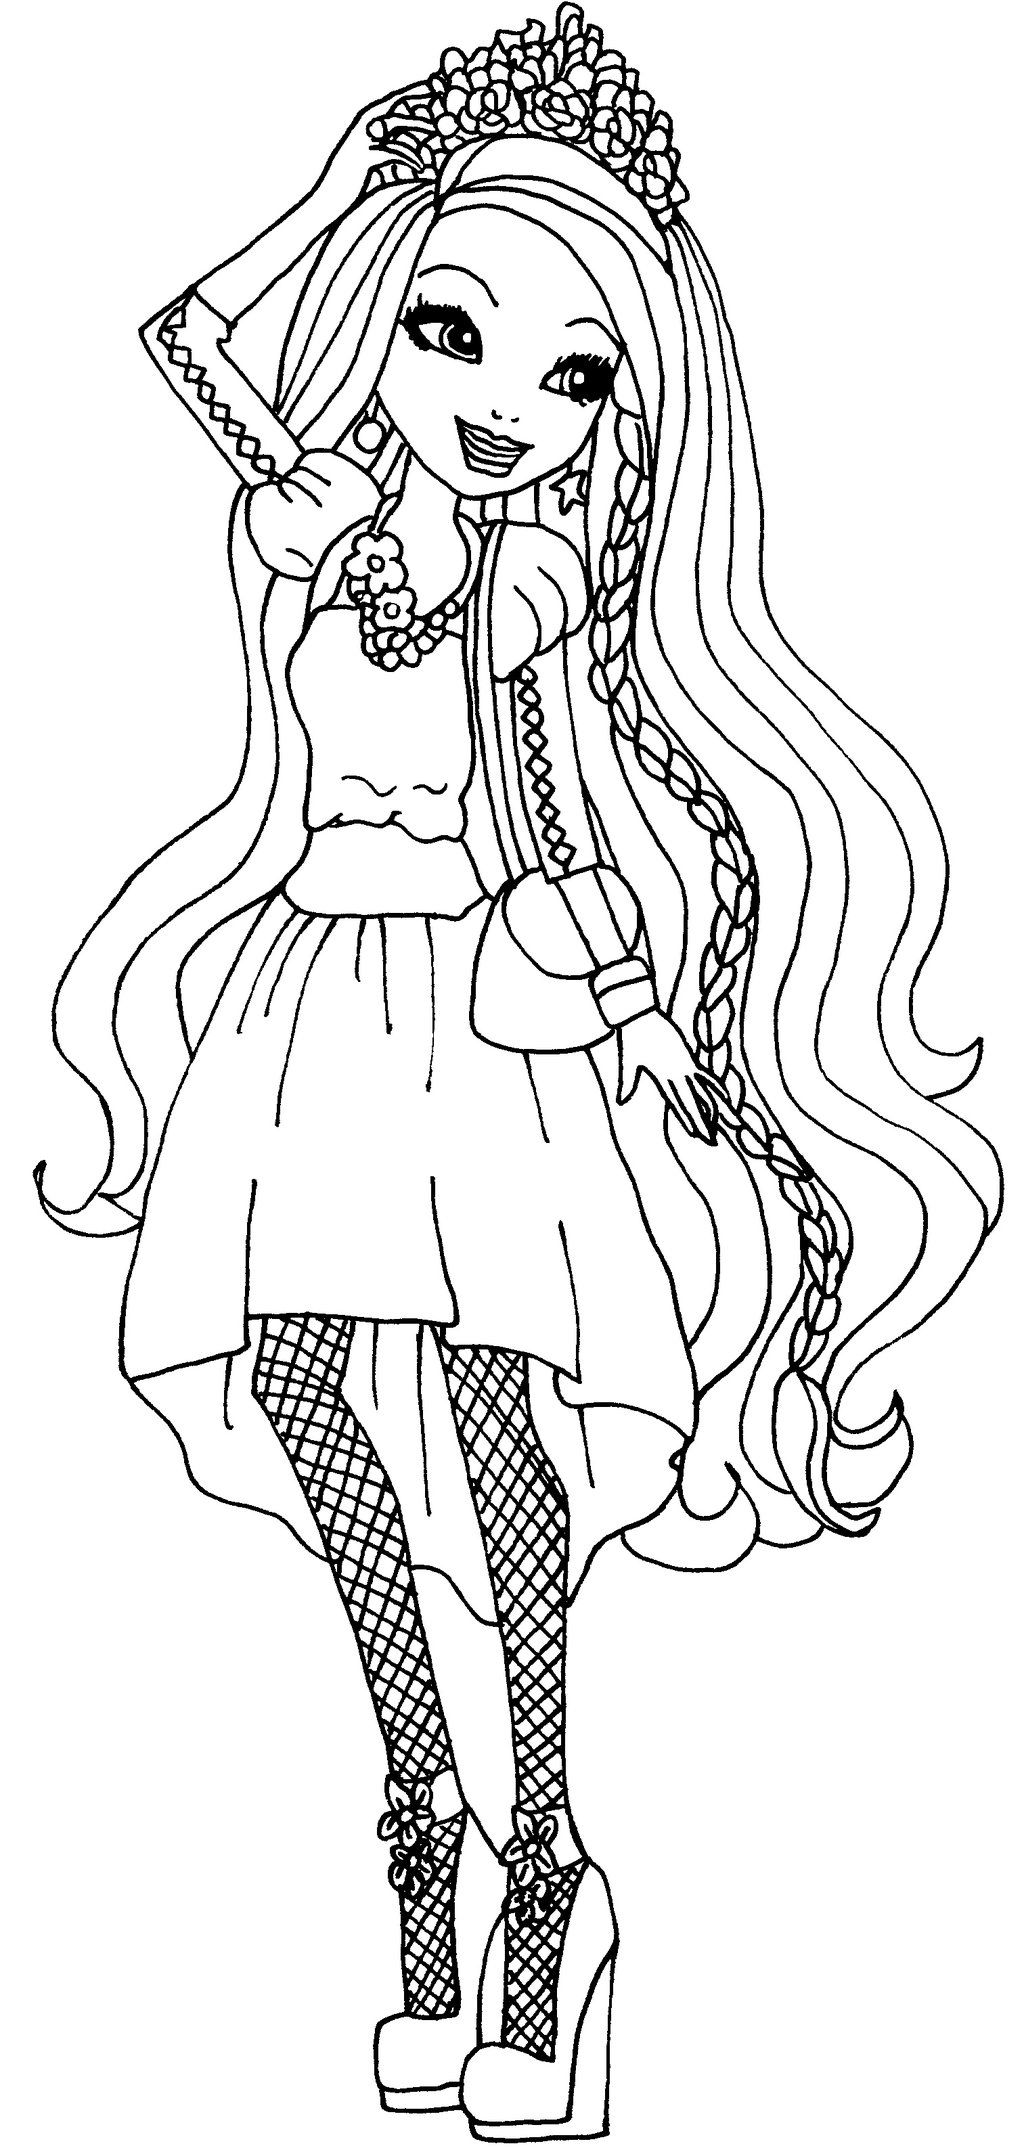 Ever after high coloring pictures - Top 10 Ever After High Coloring Pages